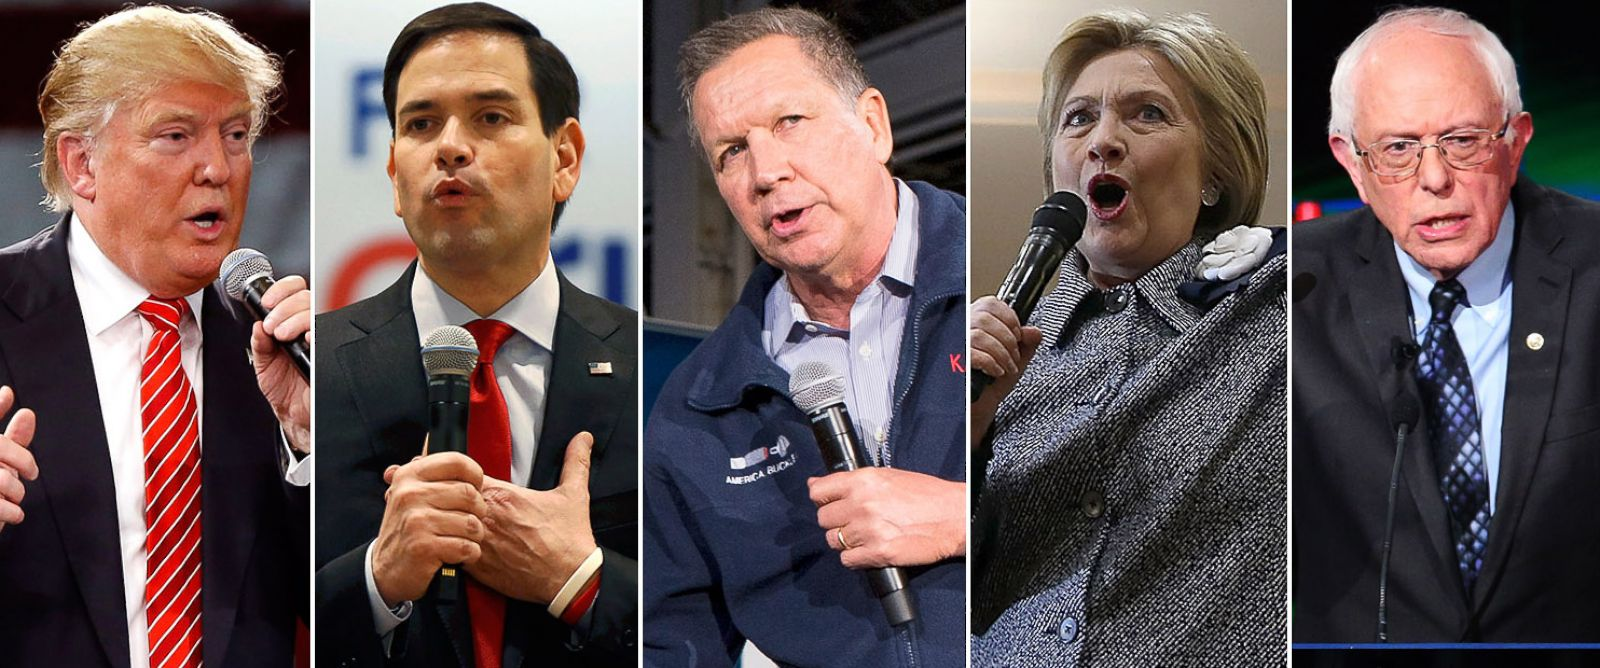 PHOTO: Donald Trump, Marco Rubio, John Kasich, Hillary Clinton and Bernie Sanders campaign for president.